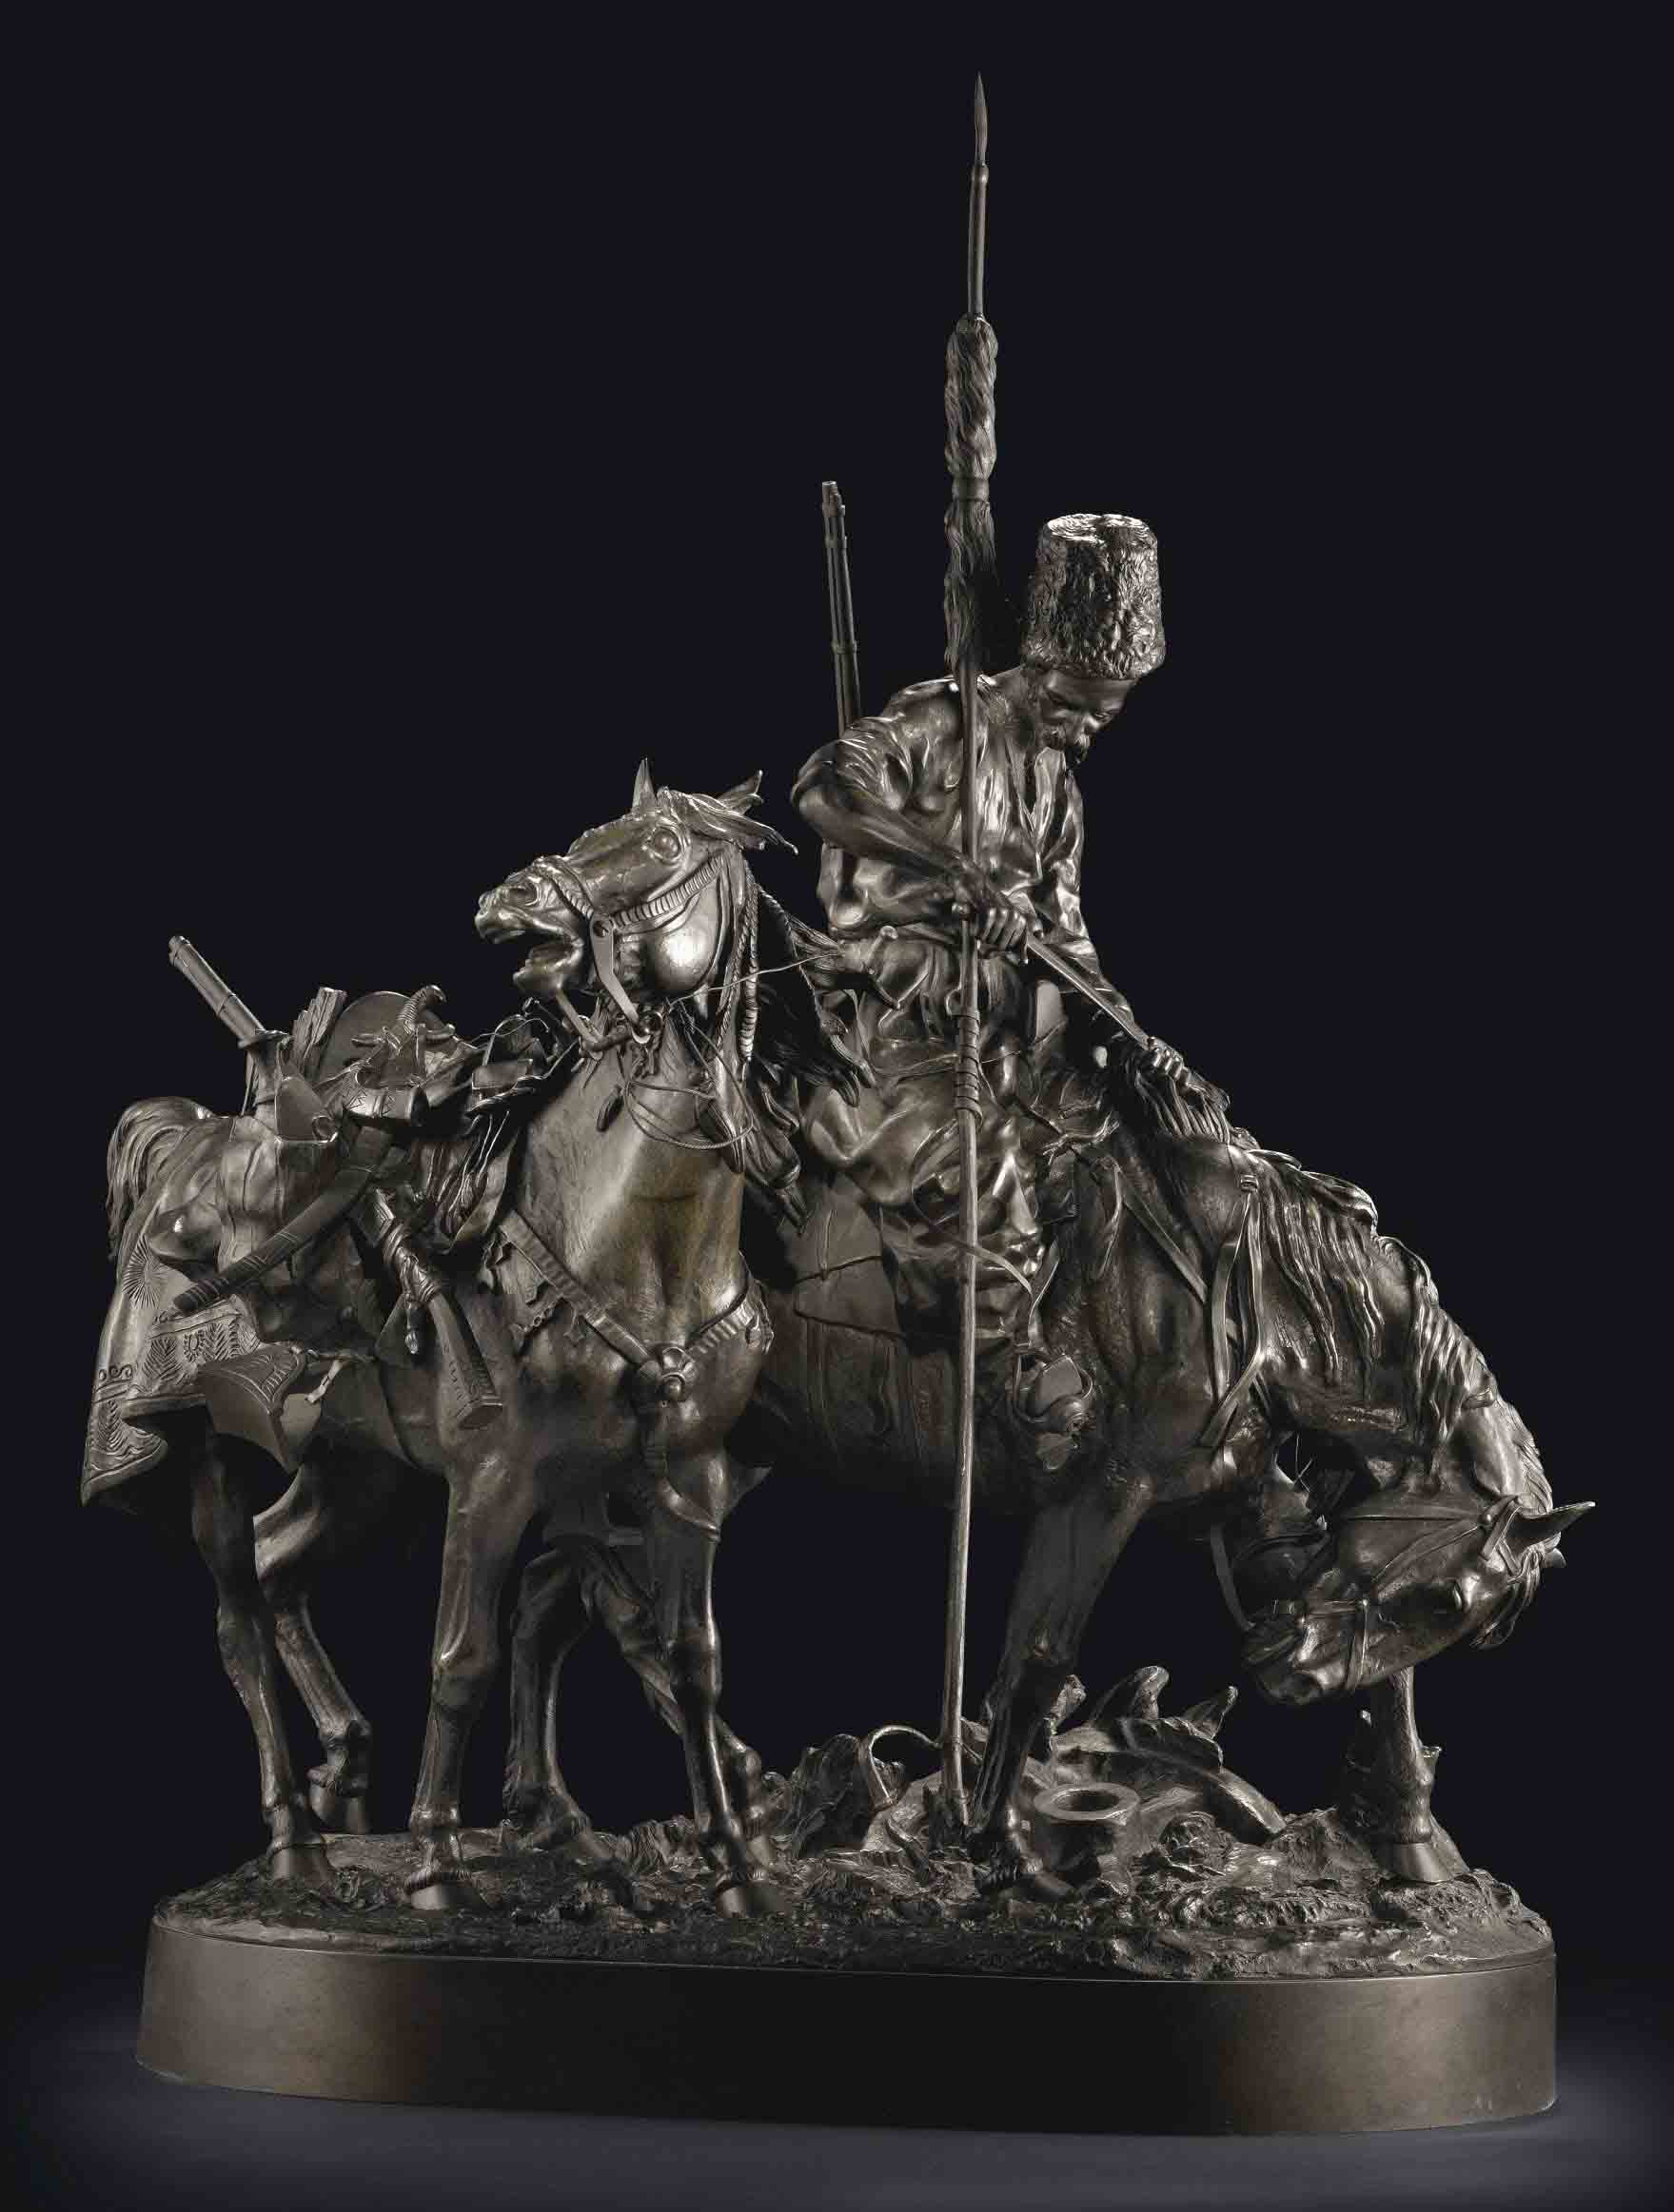 A Bronze Group of a Zaporozhian Cossack After Battle